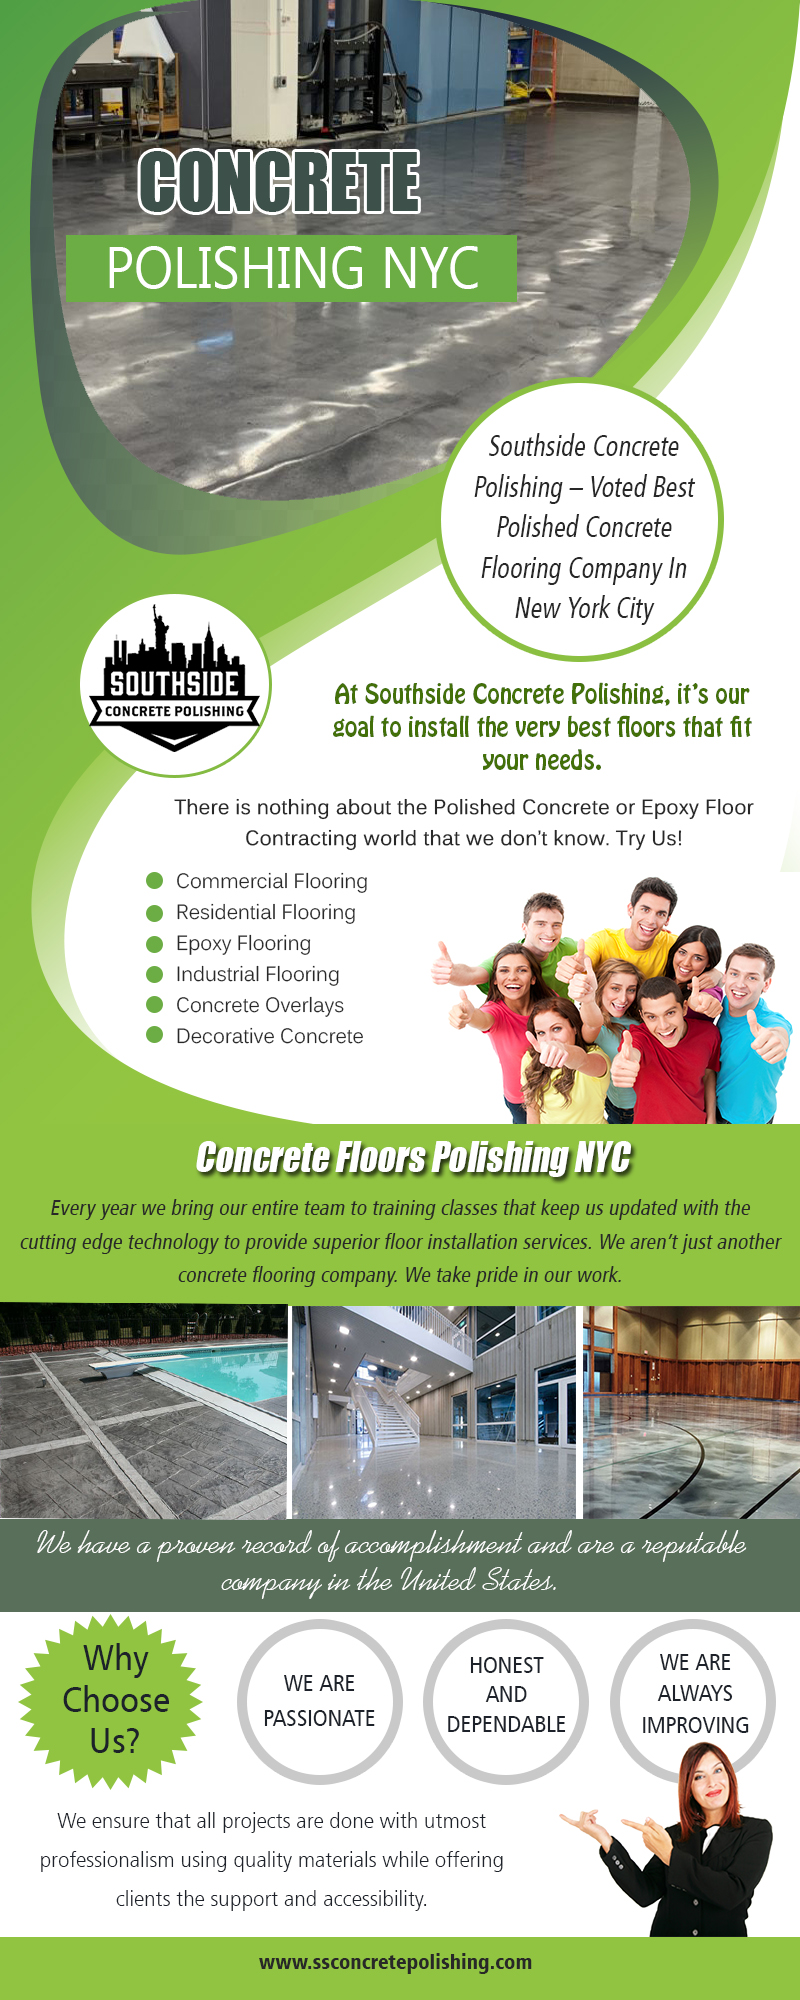 Concrete polishing NYC